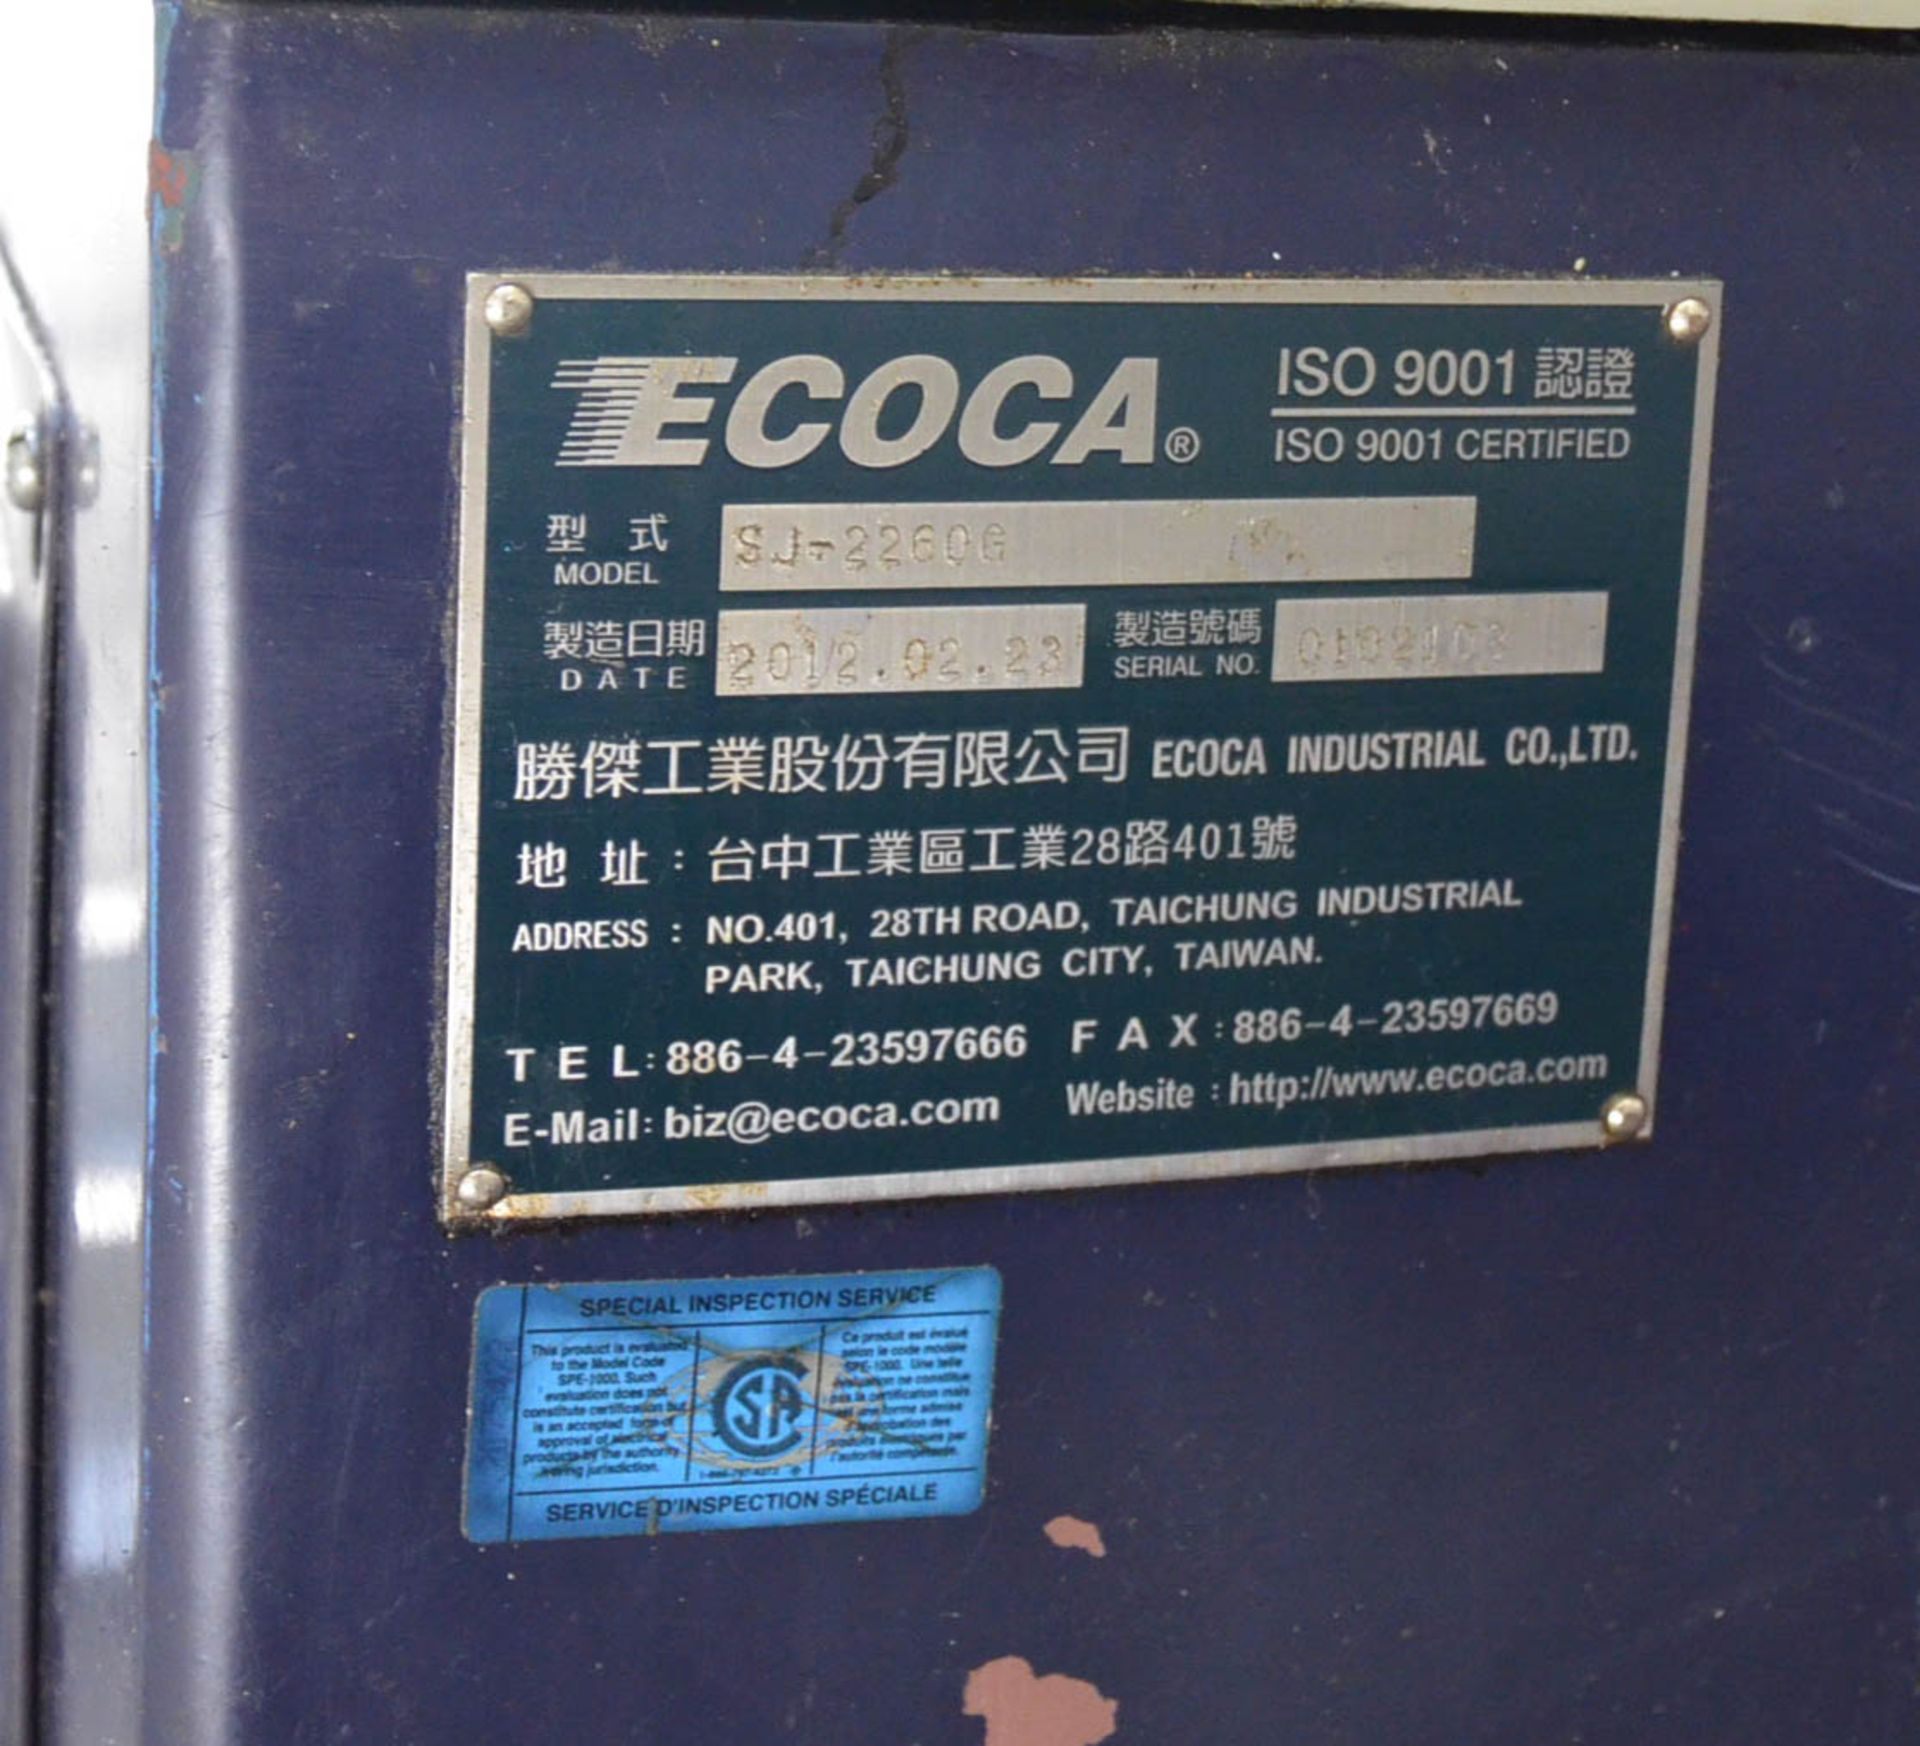 """ECOCA (2012) SJ-2260G GAP BED ENGINE LATHE WITH 22"""" SWING OVER BED, 30"""" SWING IN THE GAP, 60"""" - Image 3 of 9"""